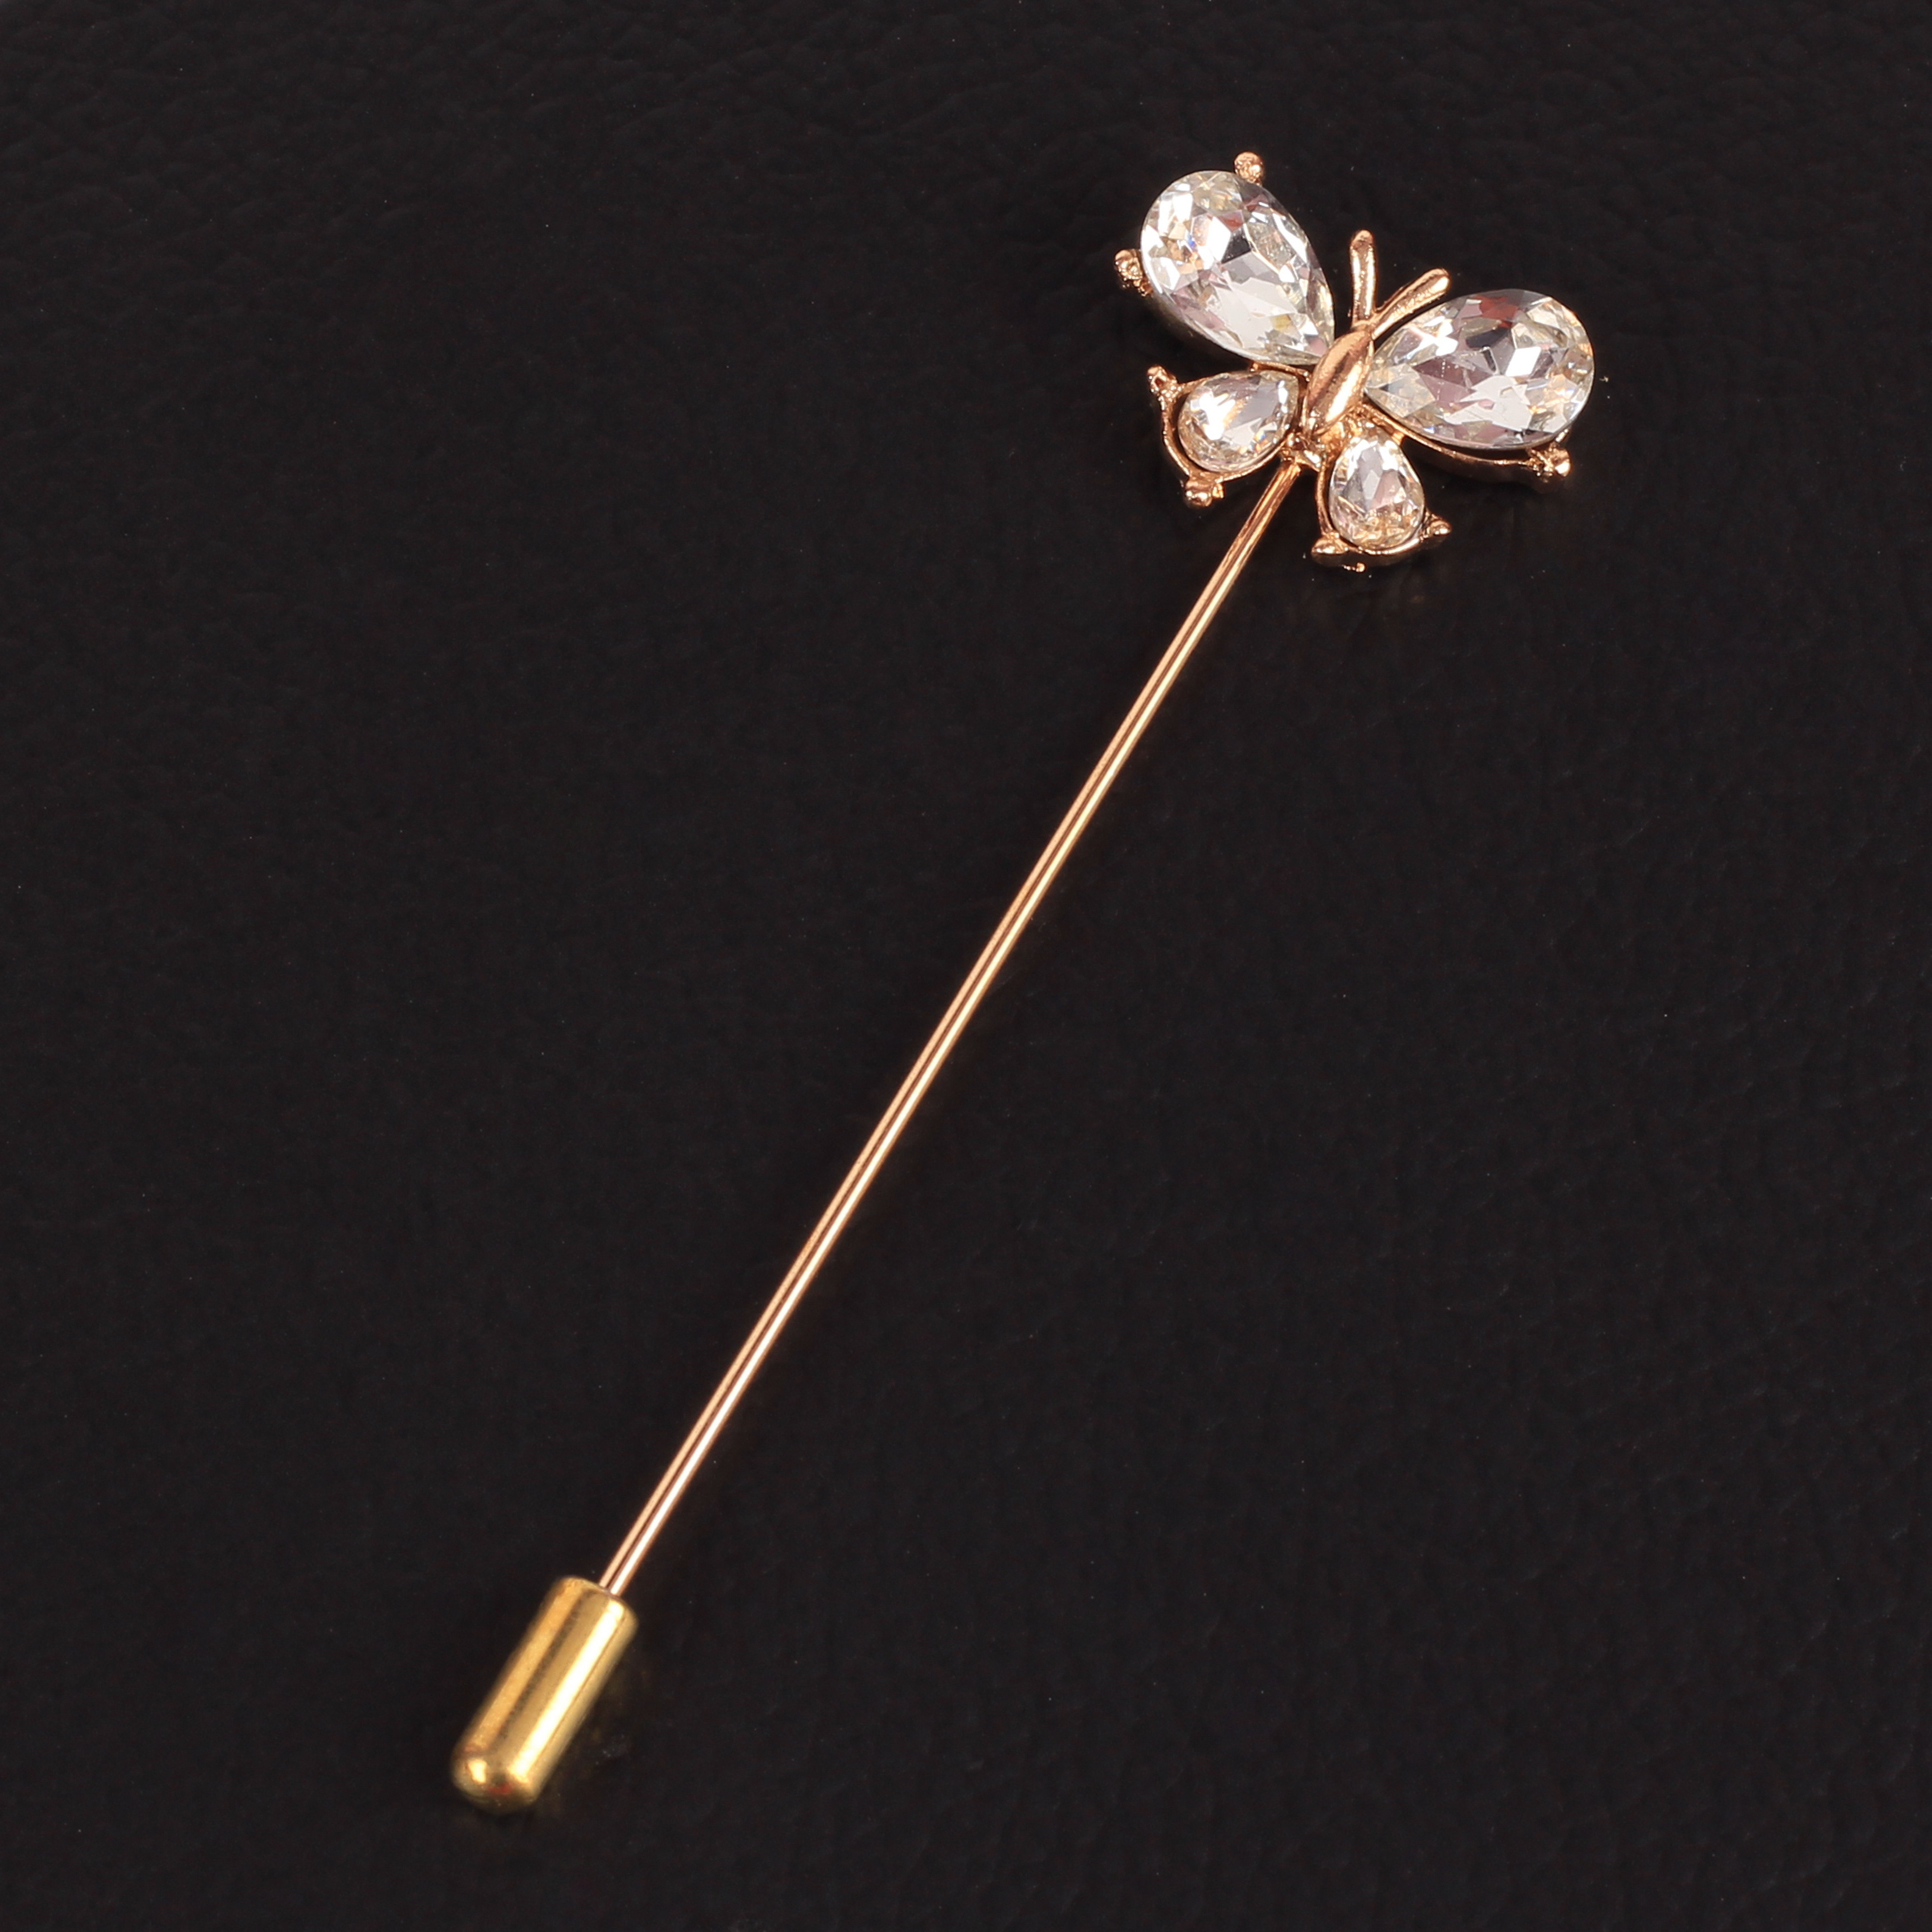 Panjatan Cute Butterfly with Pearls Studded Lapel Pin Brooch